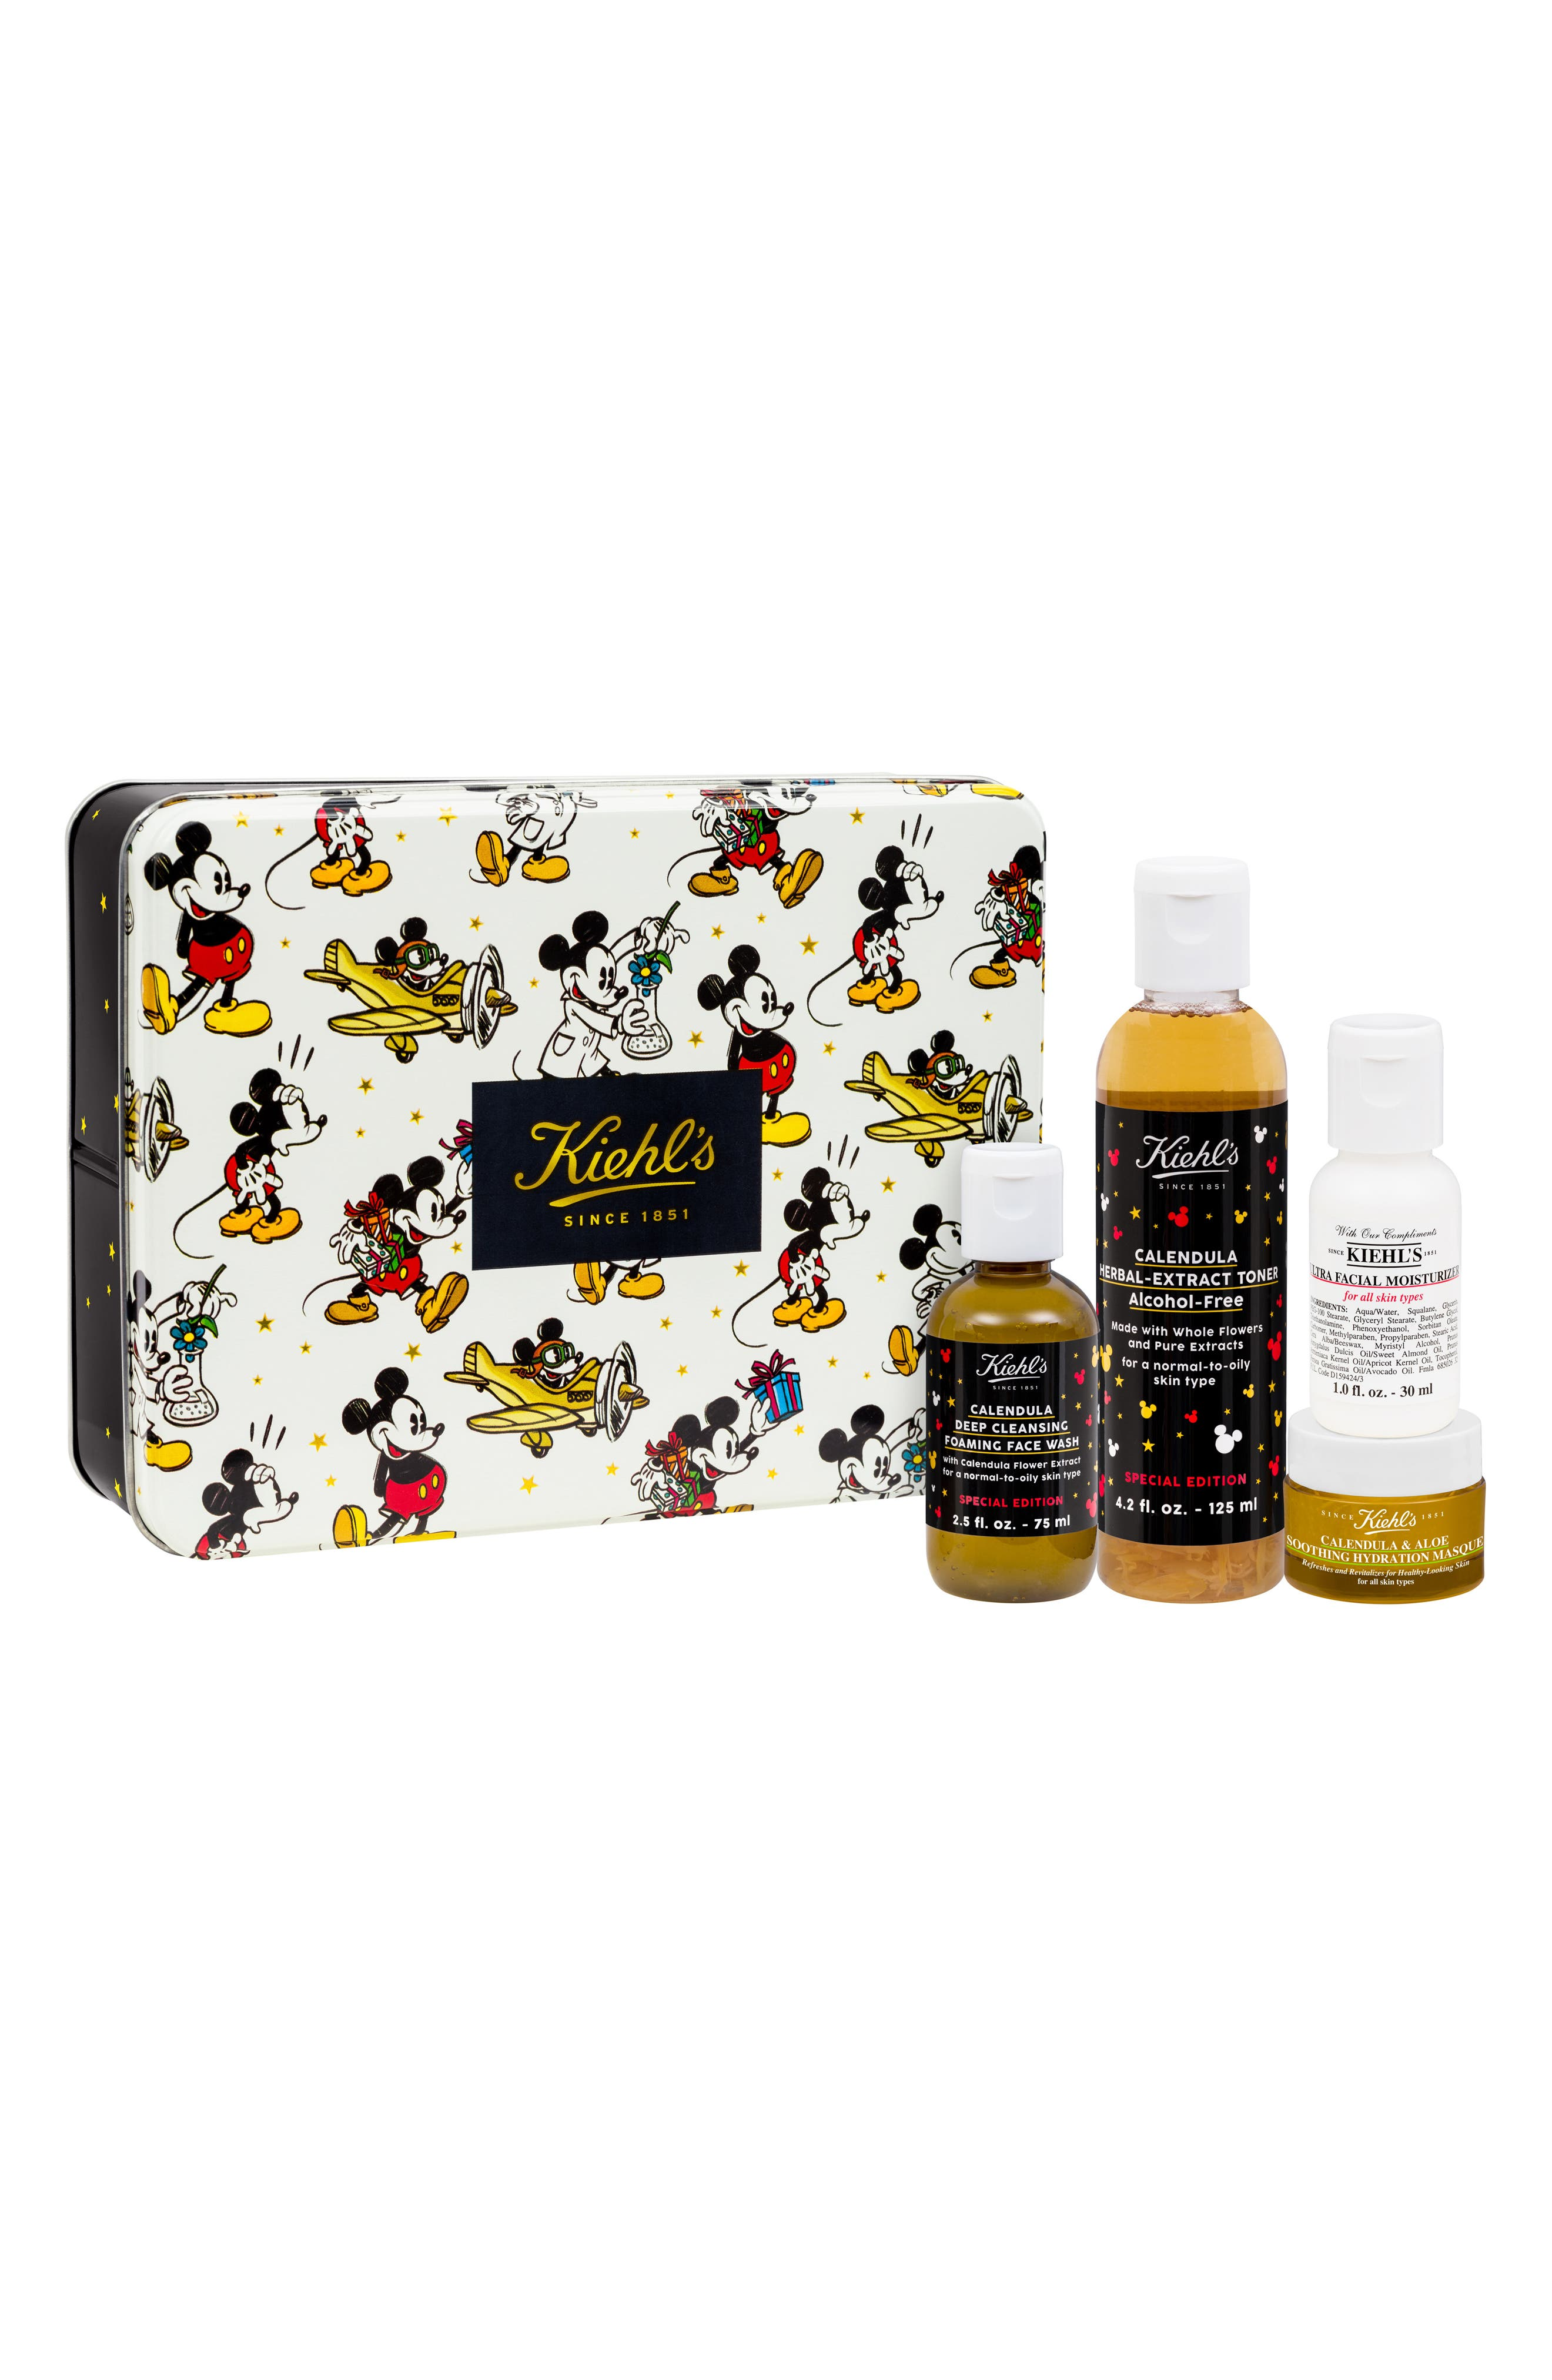 Disney x Kiehl's Since 1851 Collection for a Cause Set ($50 Value)